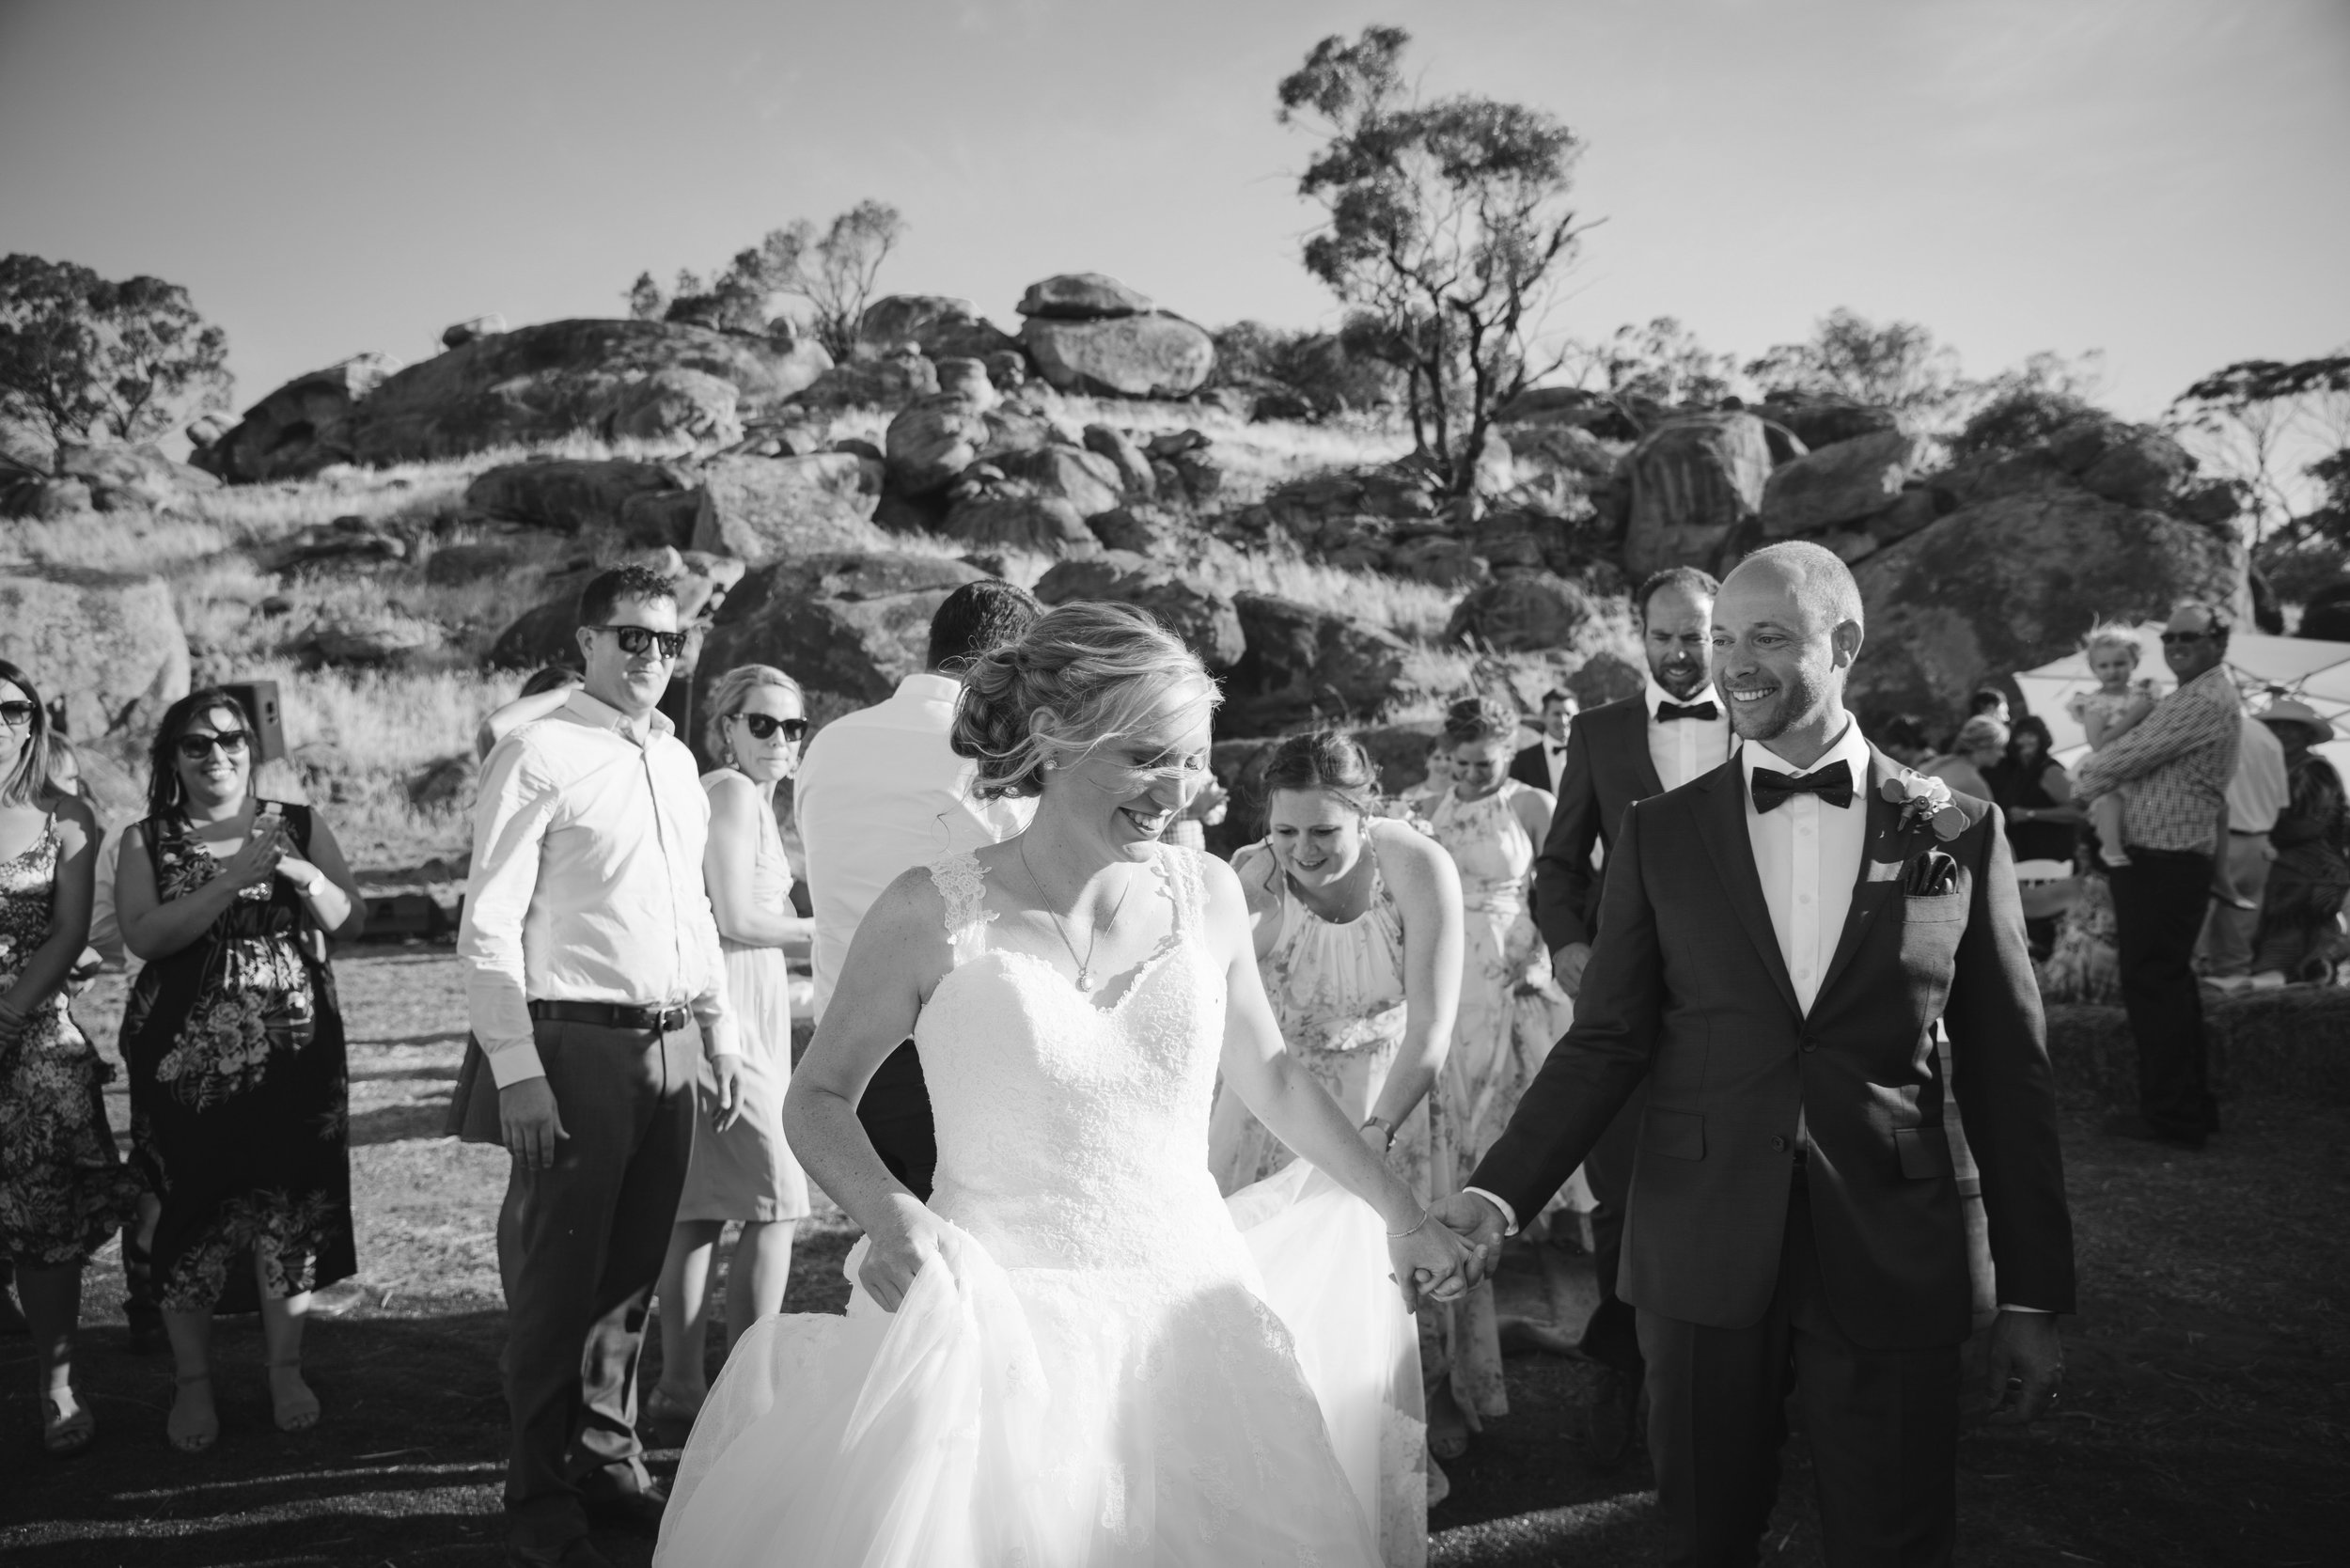 Wheatbelt Merredin Rustic Rural Farm Wedding (30).jpg